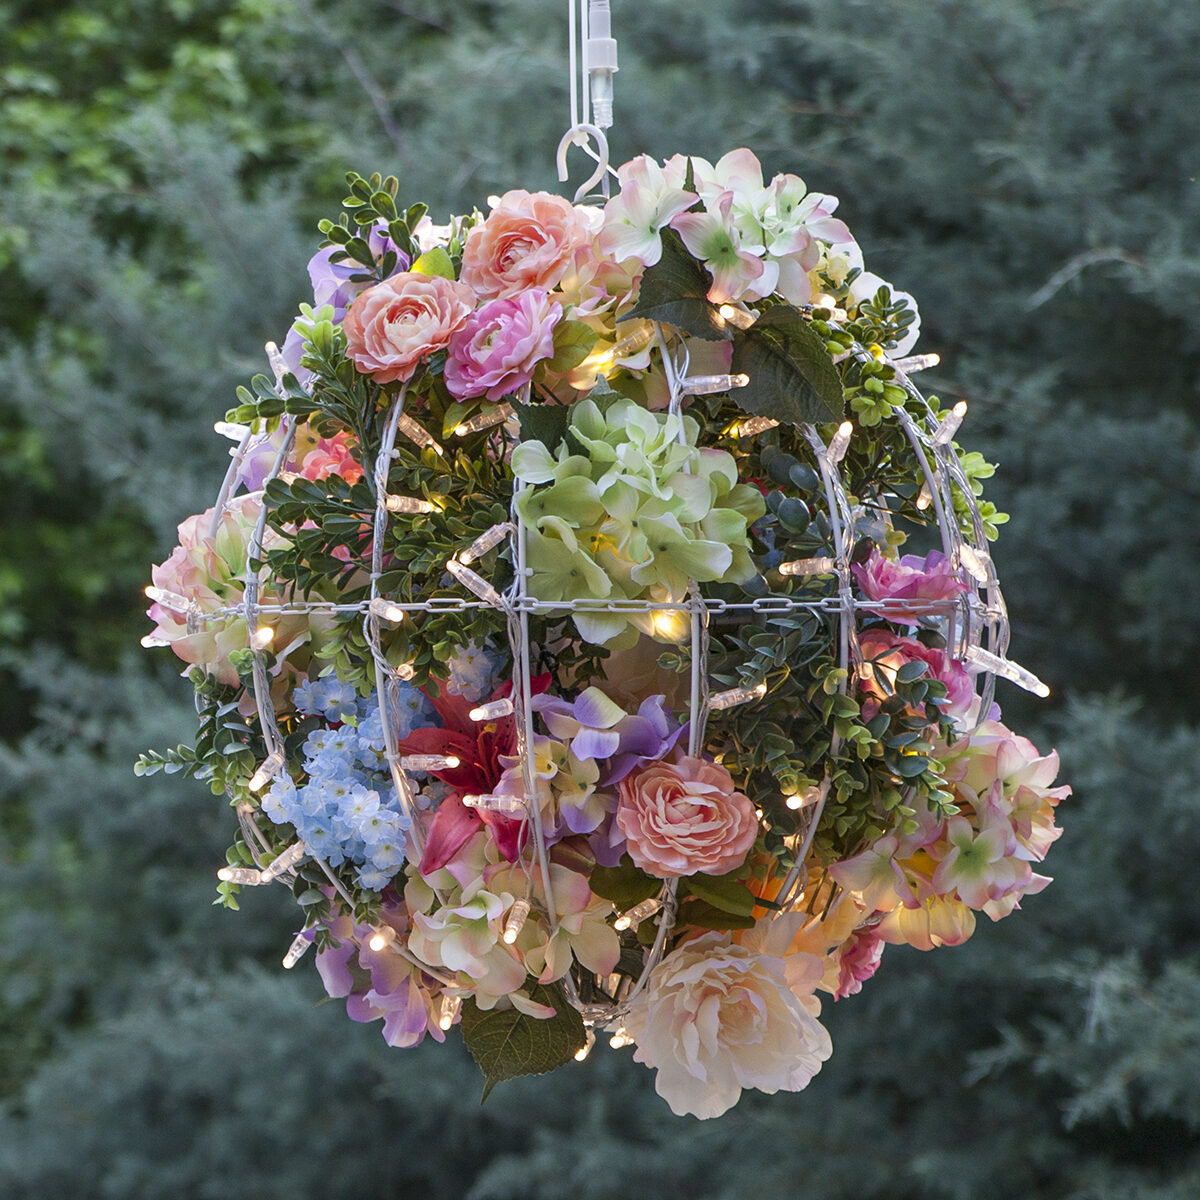 Hanging Flower Light Ball